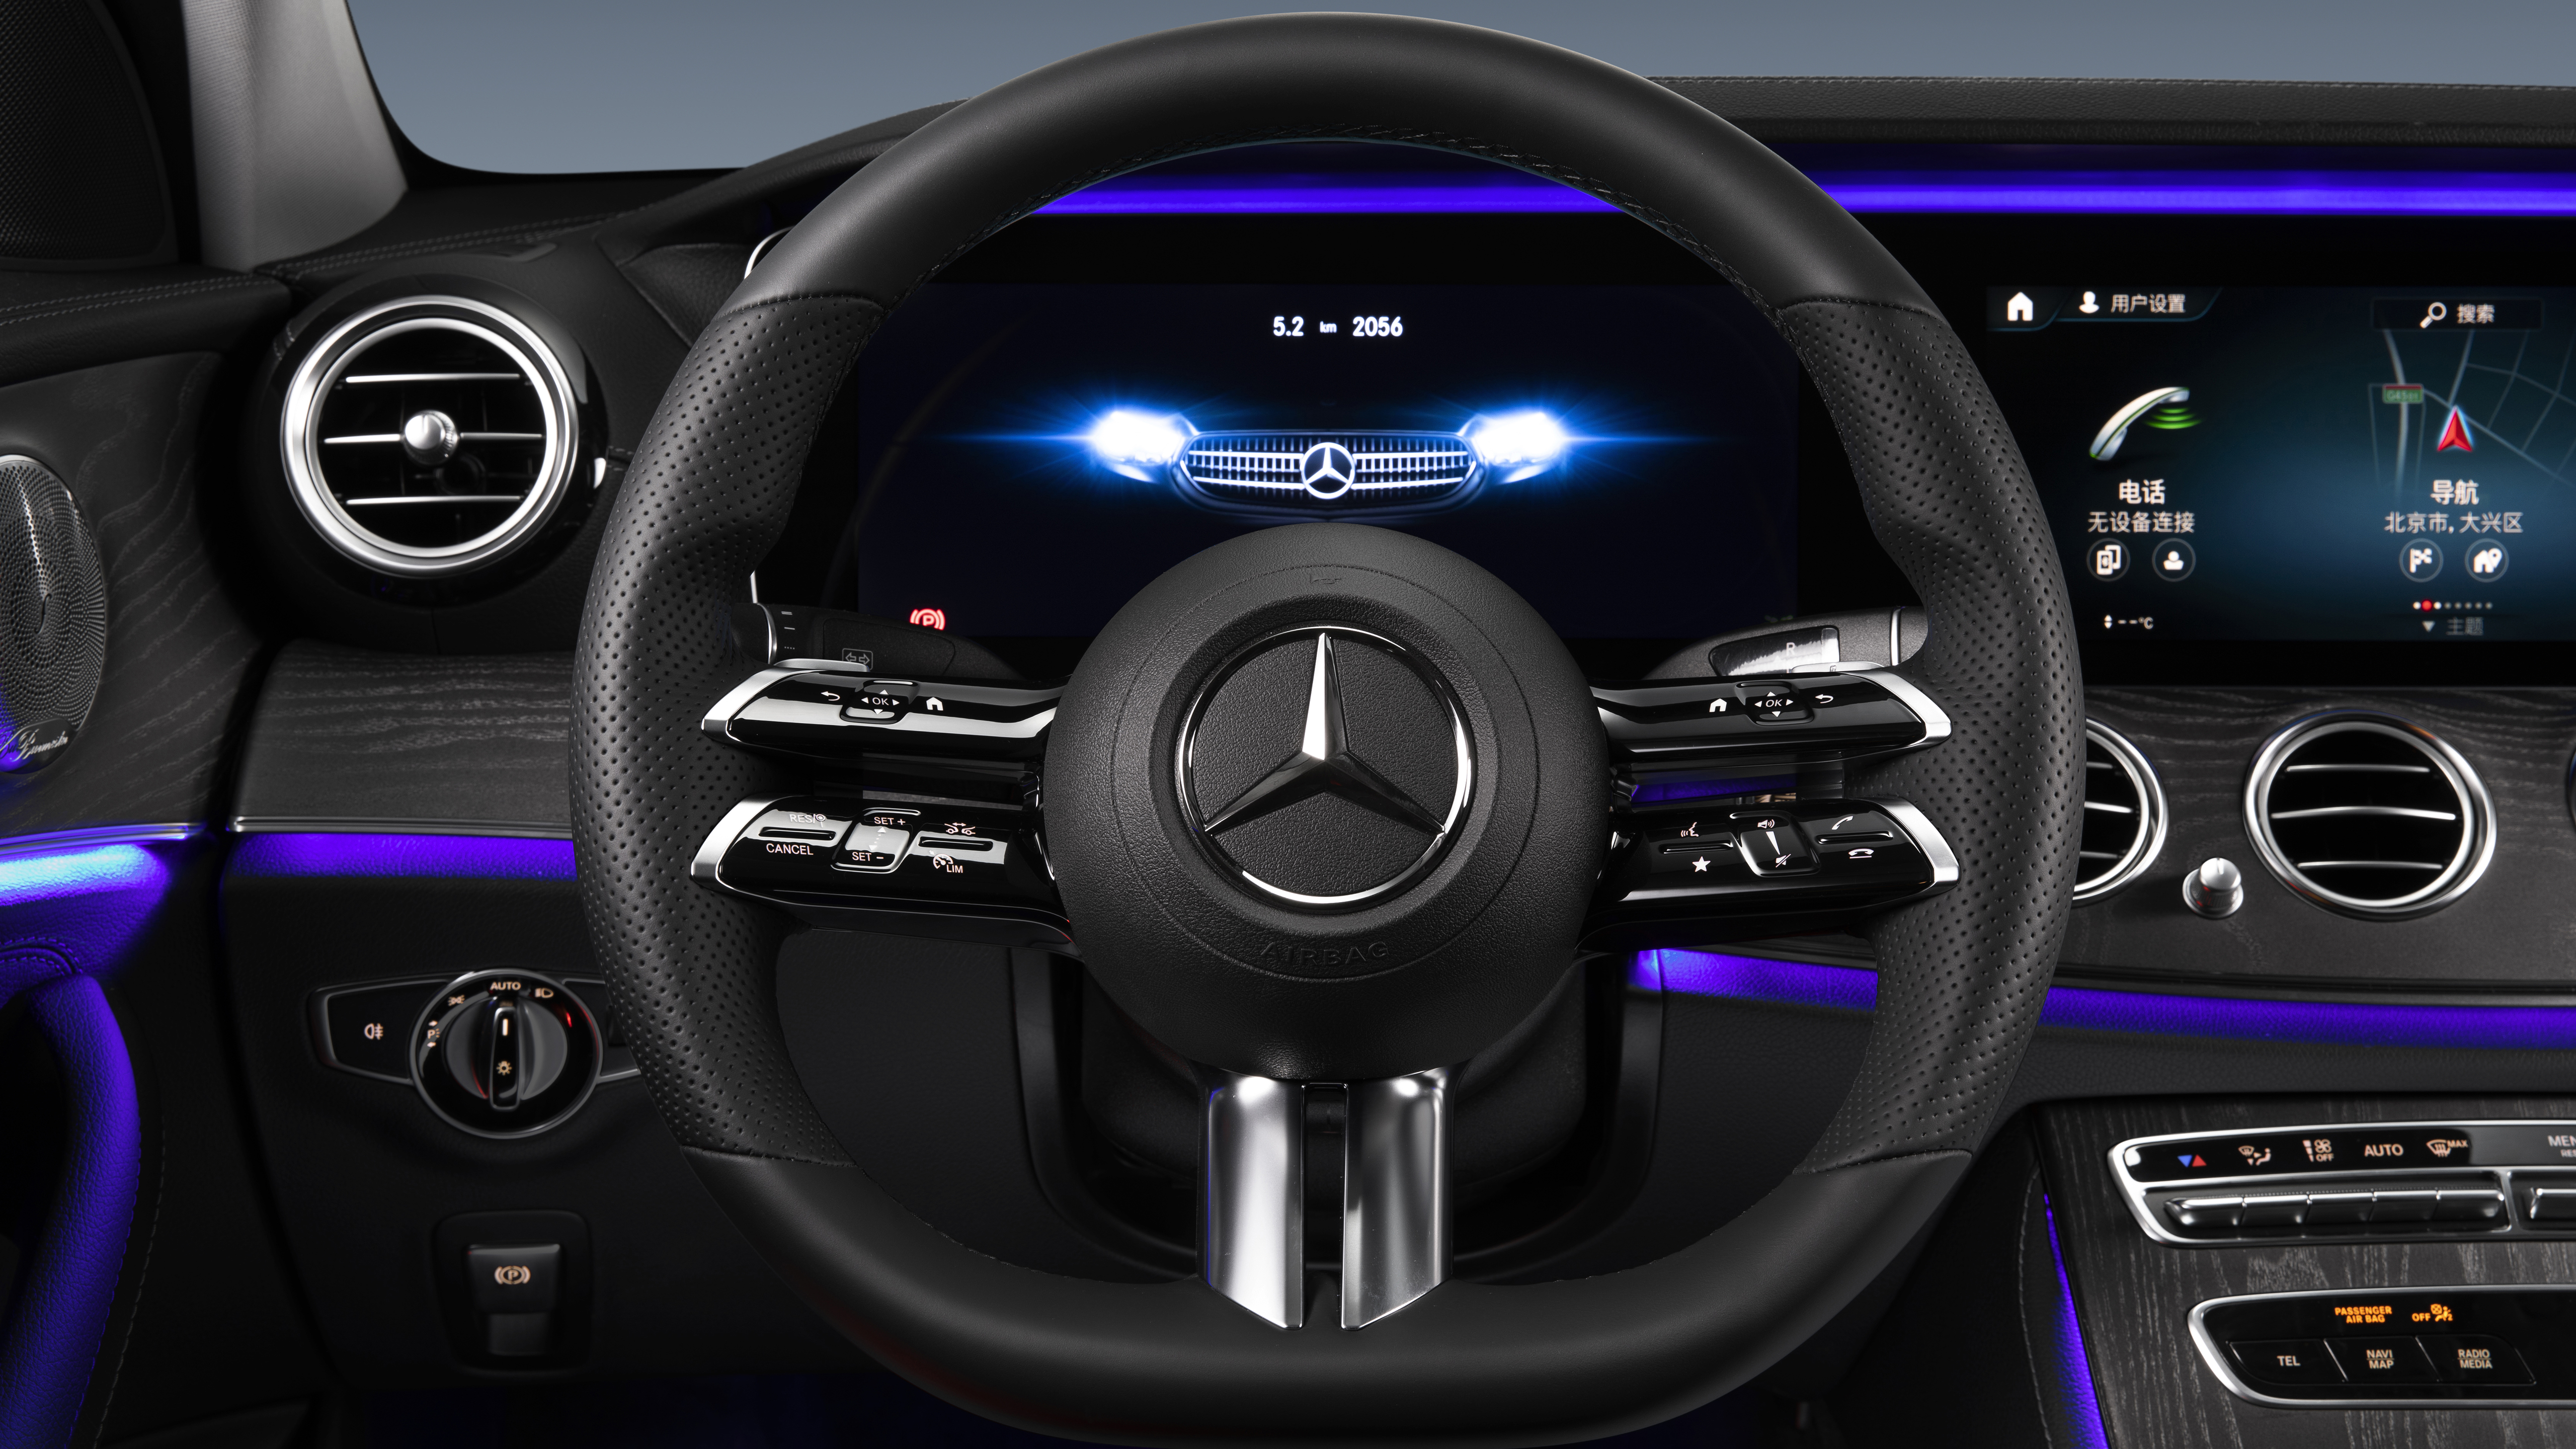 Mercedes Benz E 350 L Amg Line 2020 Interior 5k Wallpaper Hd Car Wallpapers Id 15974